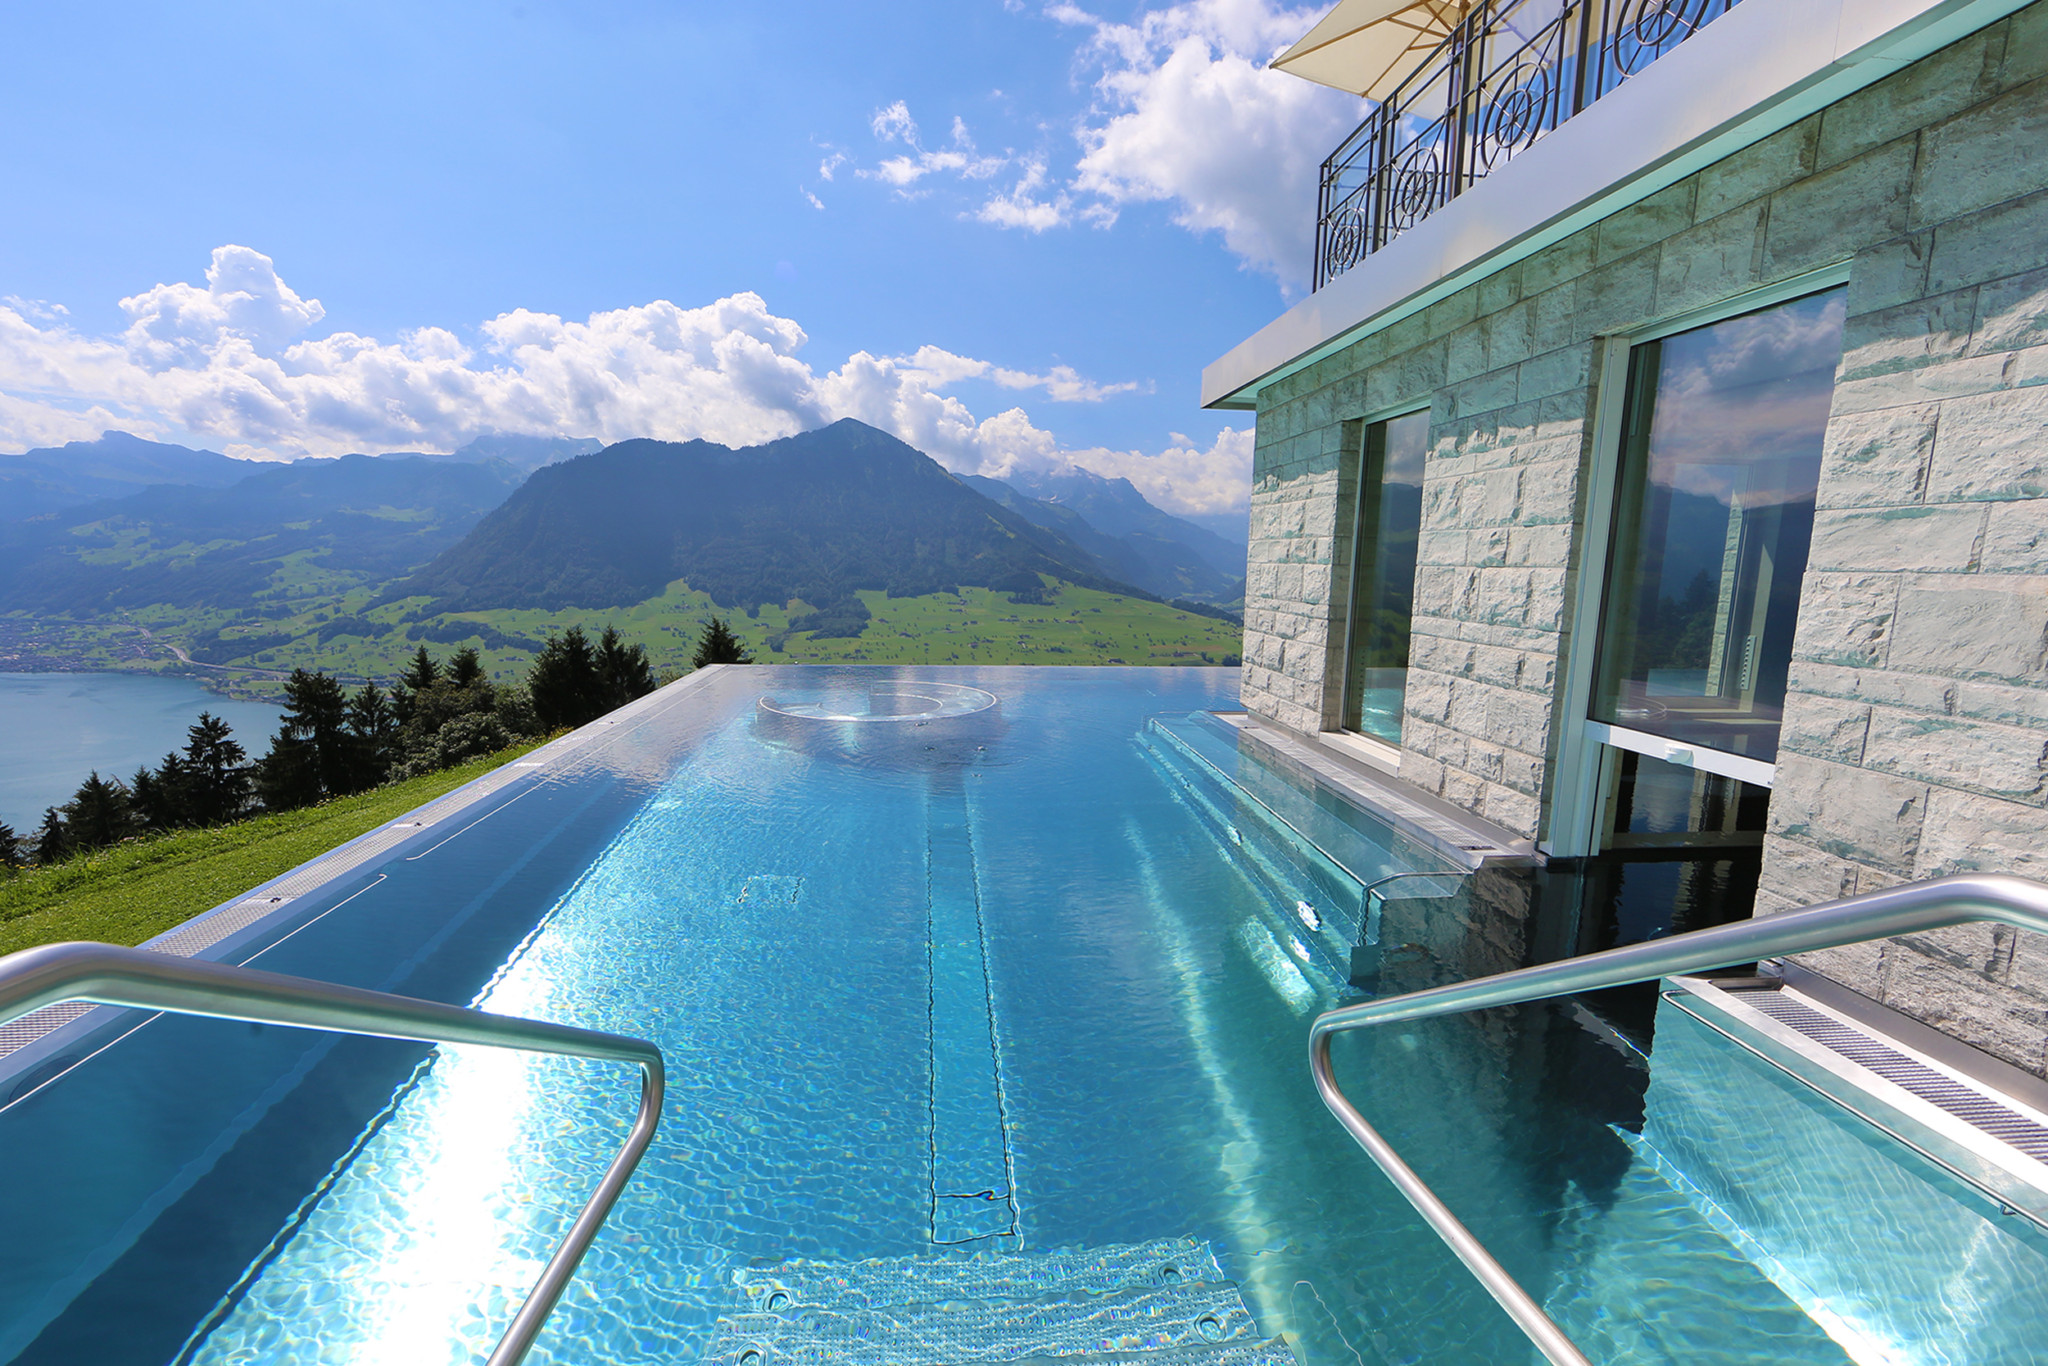 A Review Of My Stay At Hotel Villa Honegg In In Switzerland